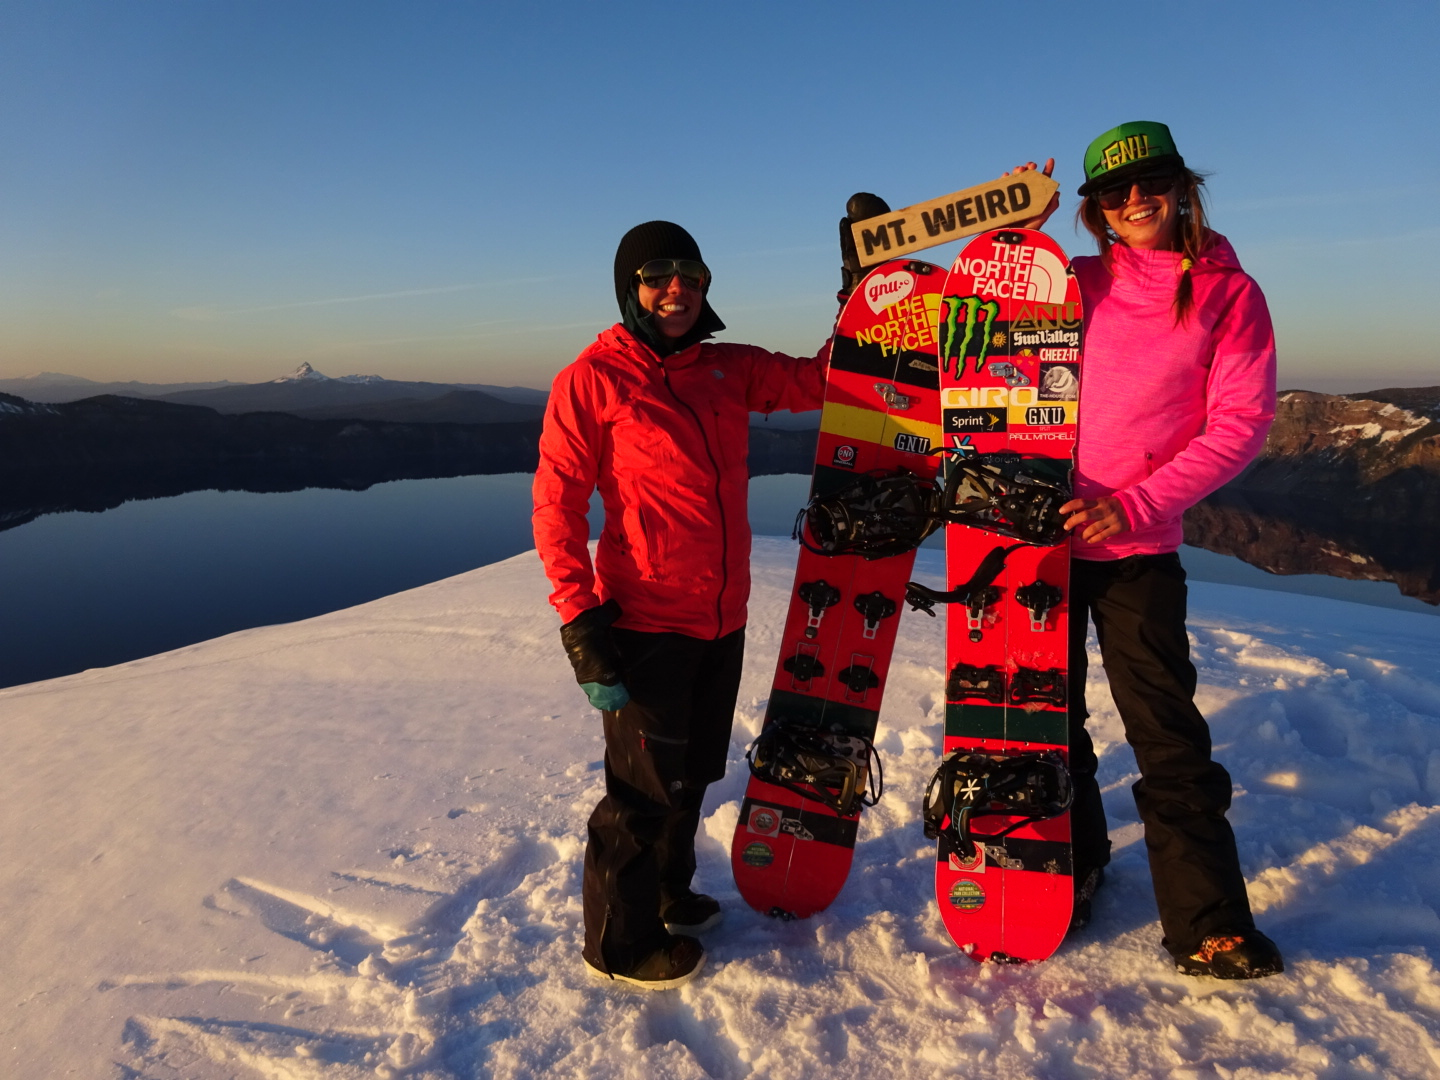 Professional women's snowboarders atop a mountain witht he GNU x pendleton boards